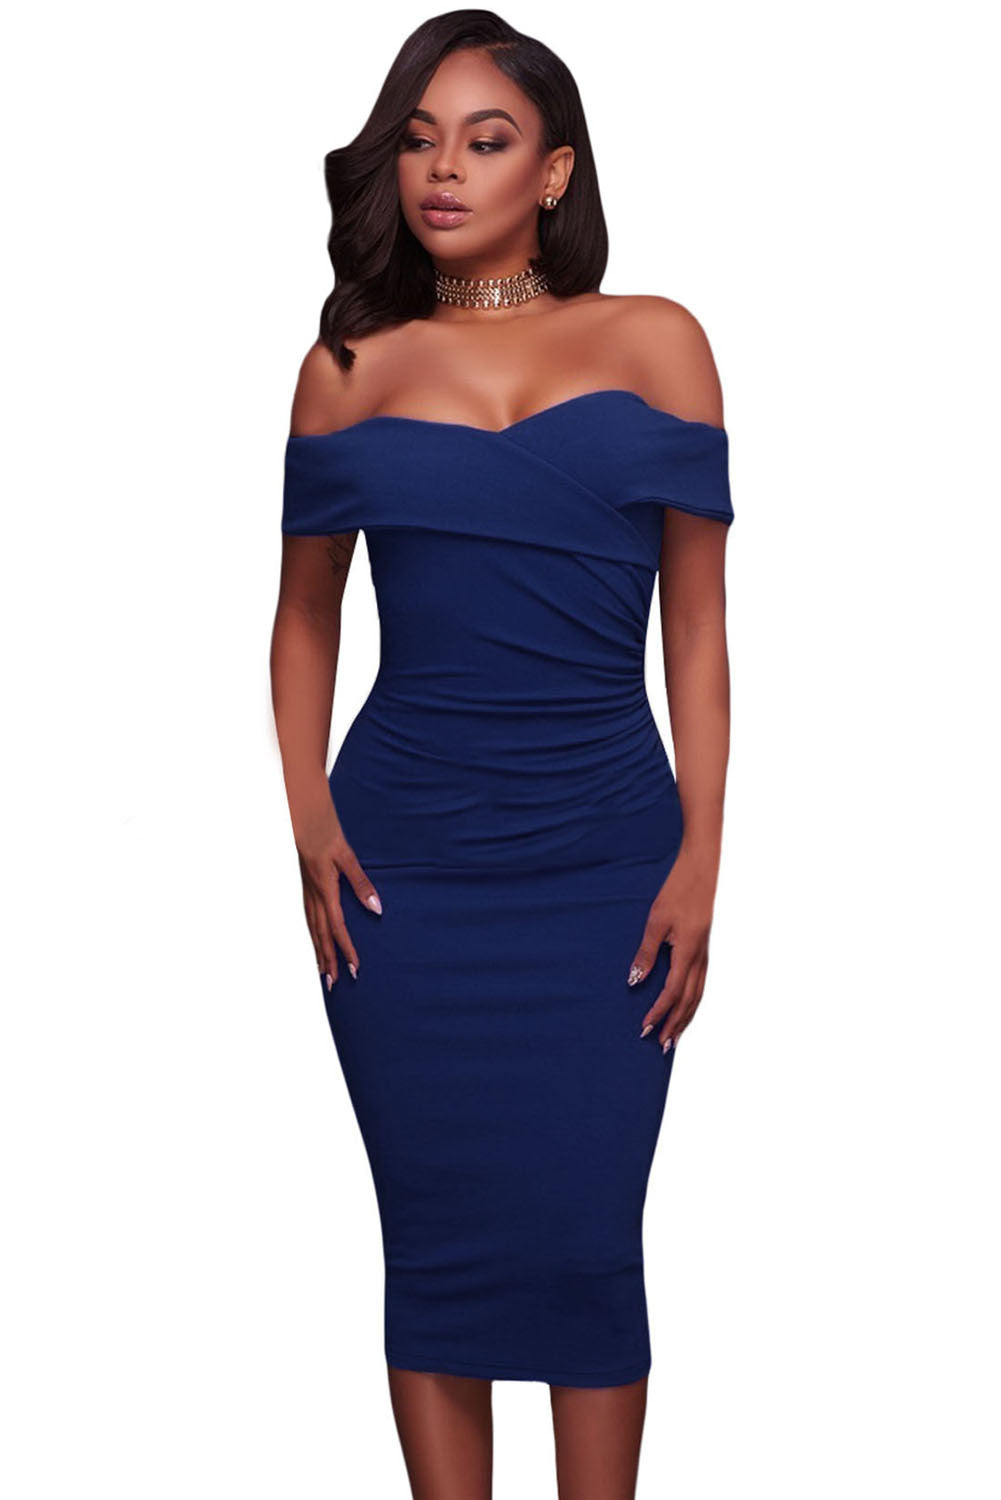 Her Trendy Royal Blue Ruched Off Shoulder Bodycon Cocktail Midi Dress